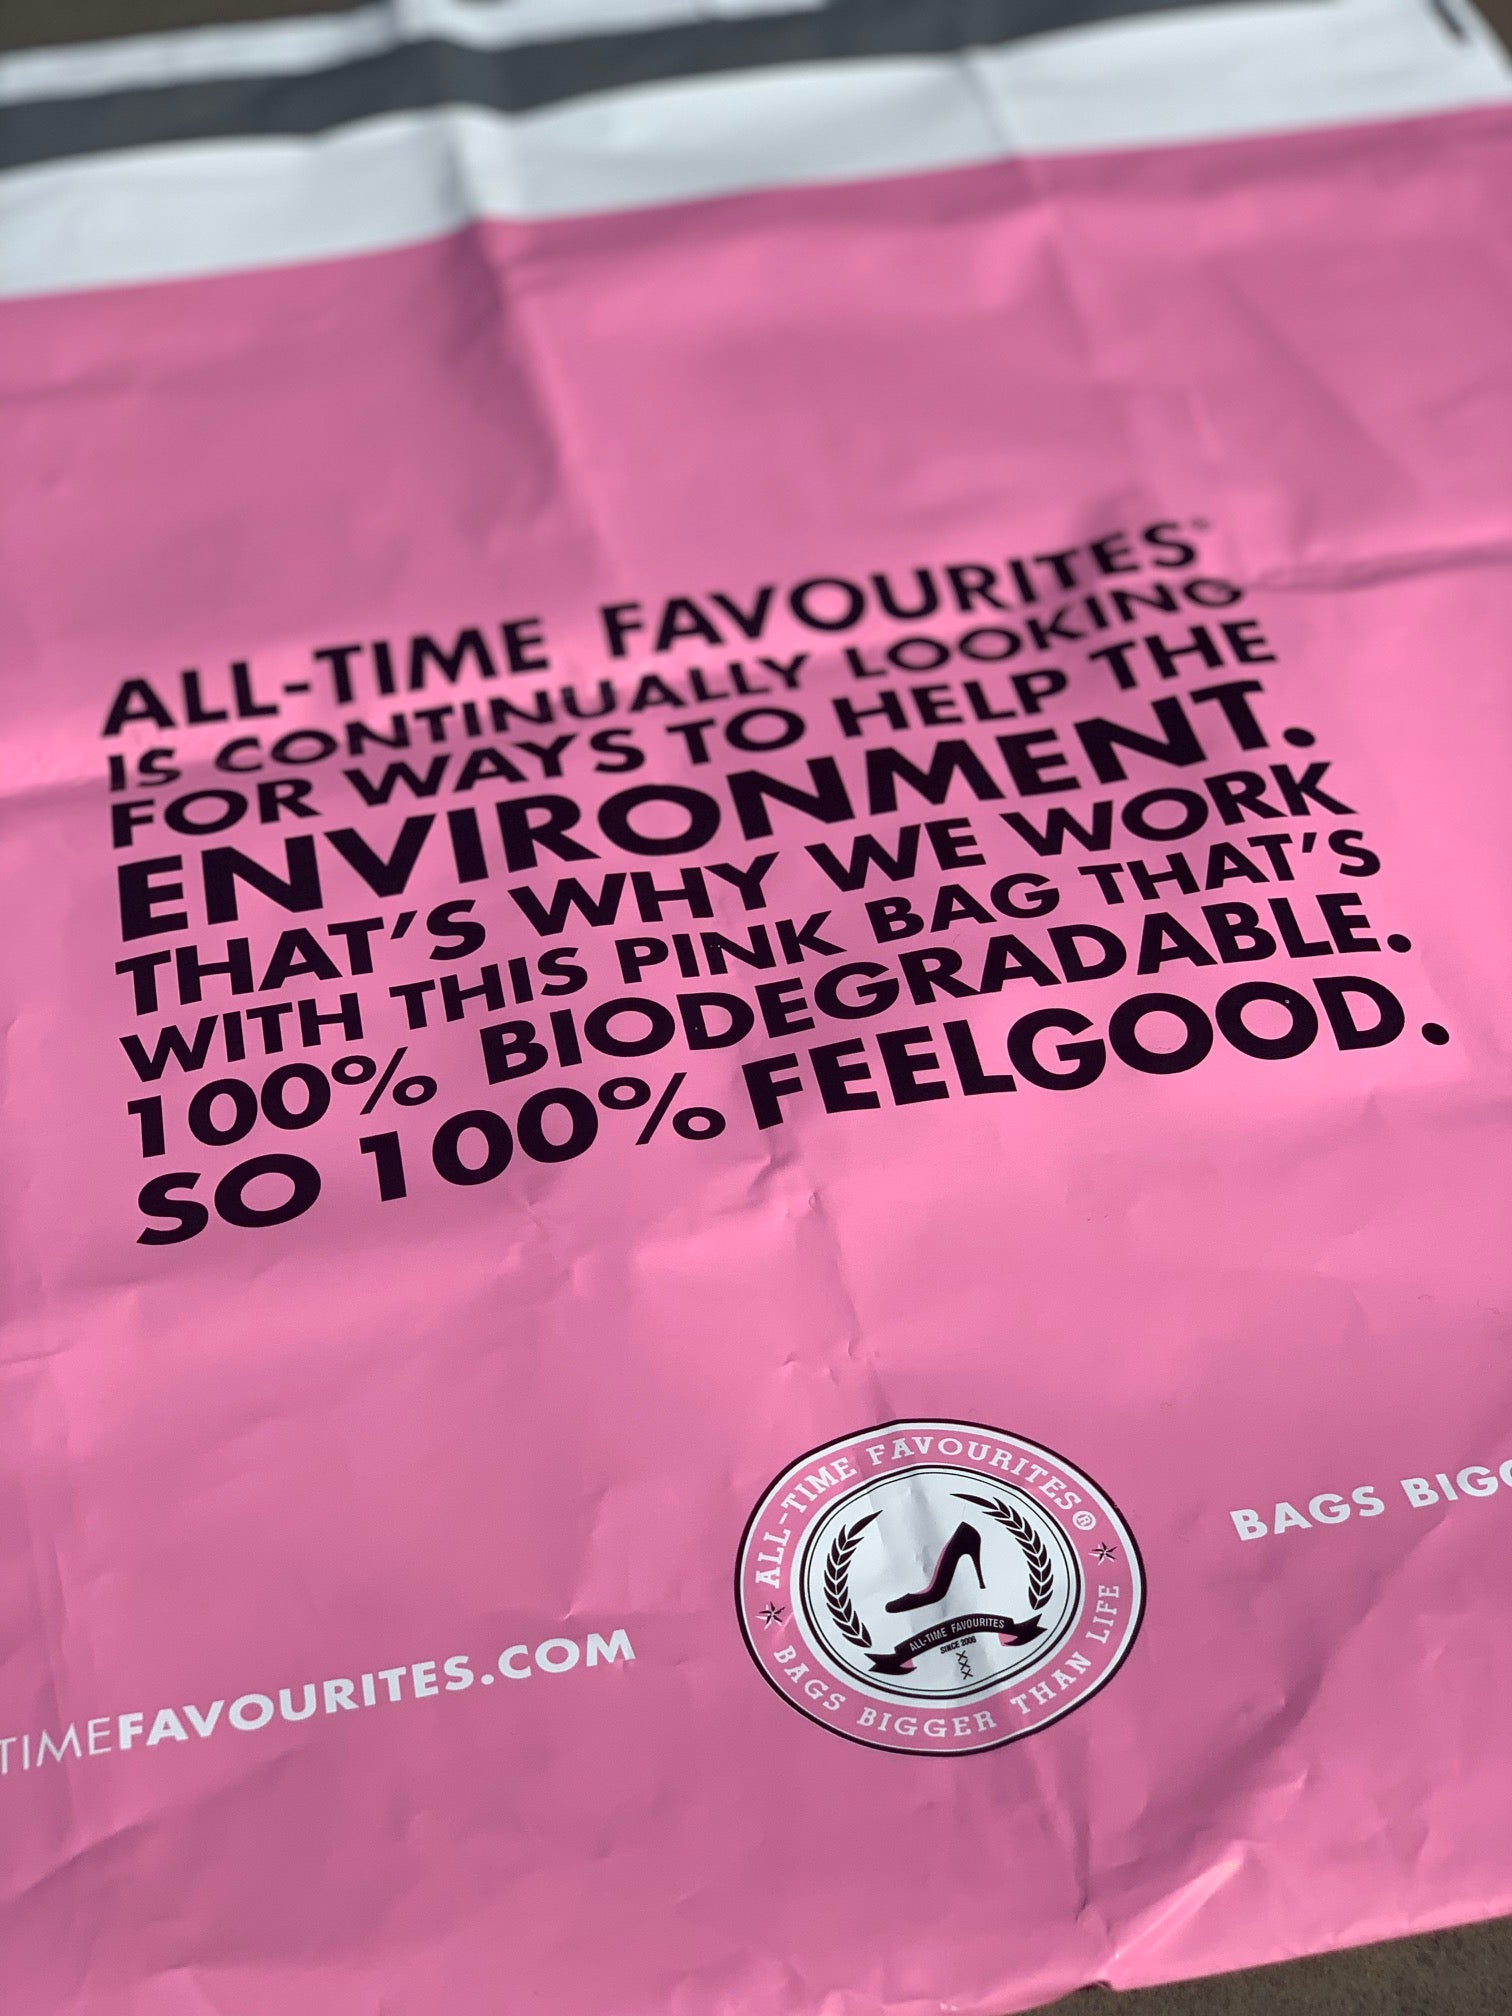 All-time Favourites Bags bigger than life